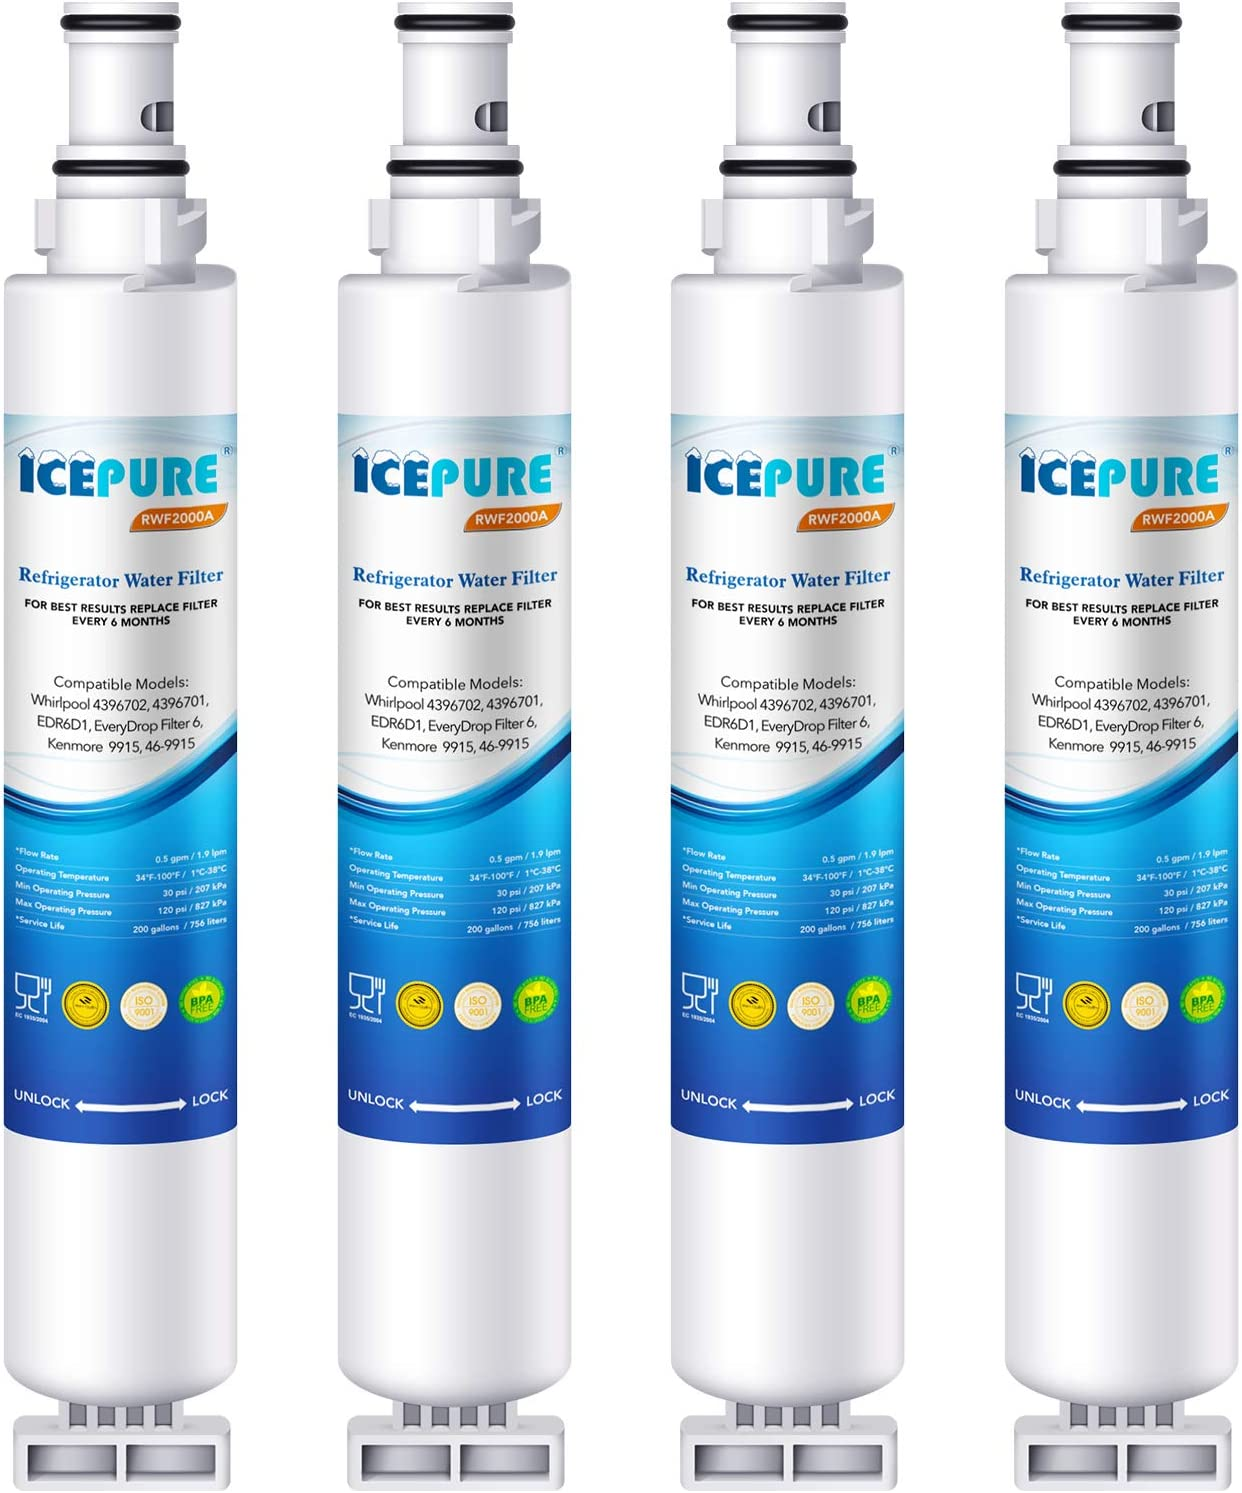 ICEPURE Refrigerator Water Filter, Compatible with 4396701, 4396702, EDR6D1, Filter 6, L200V, Kenmore 9915, 46-9915 [4PACK]